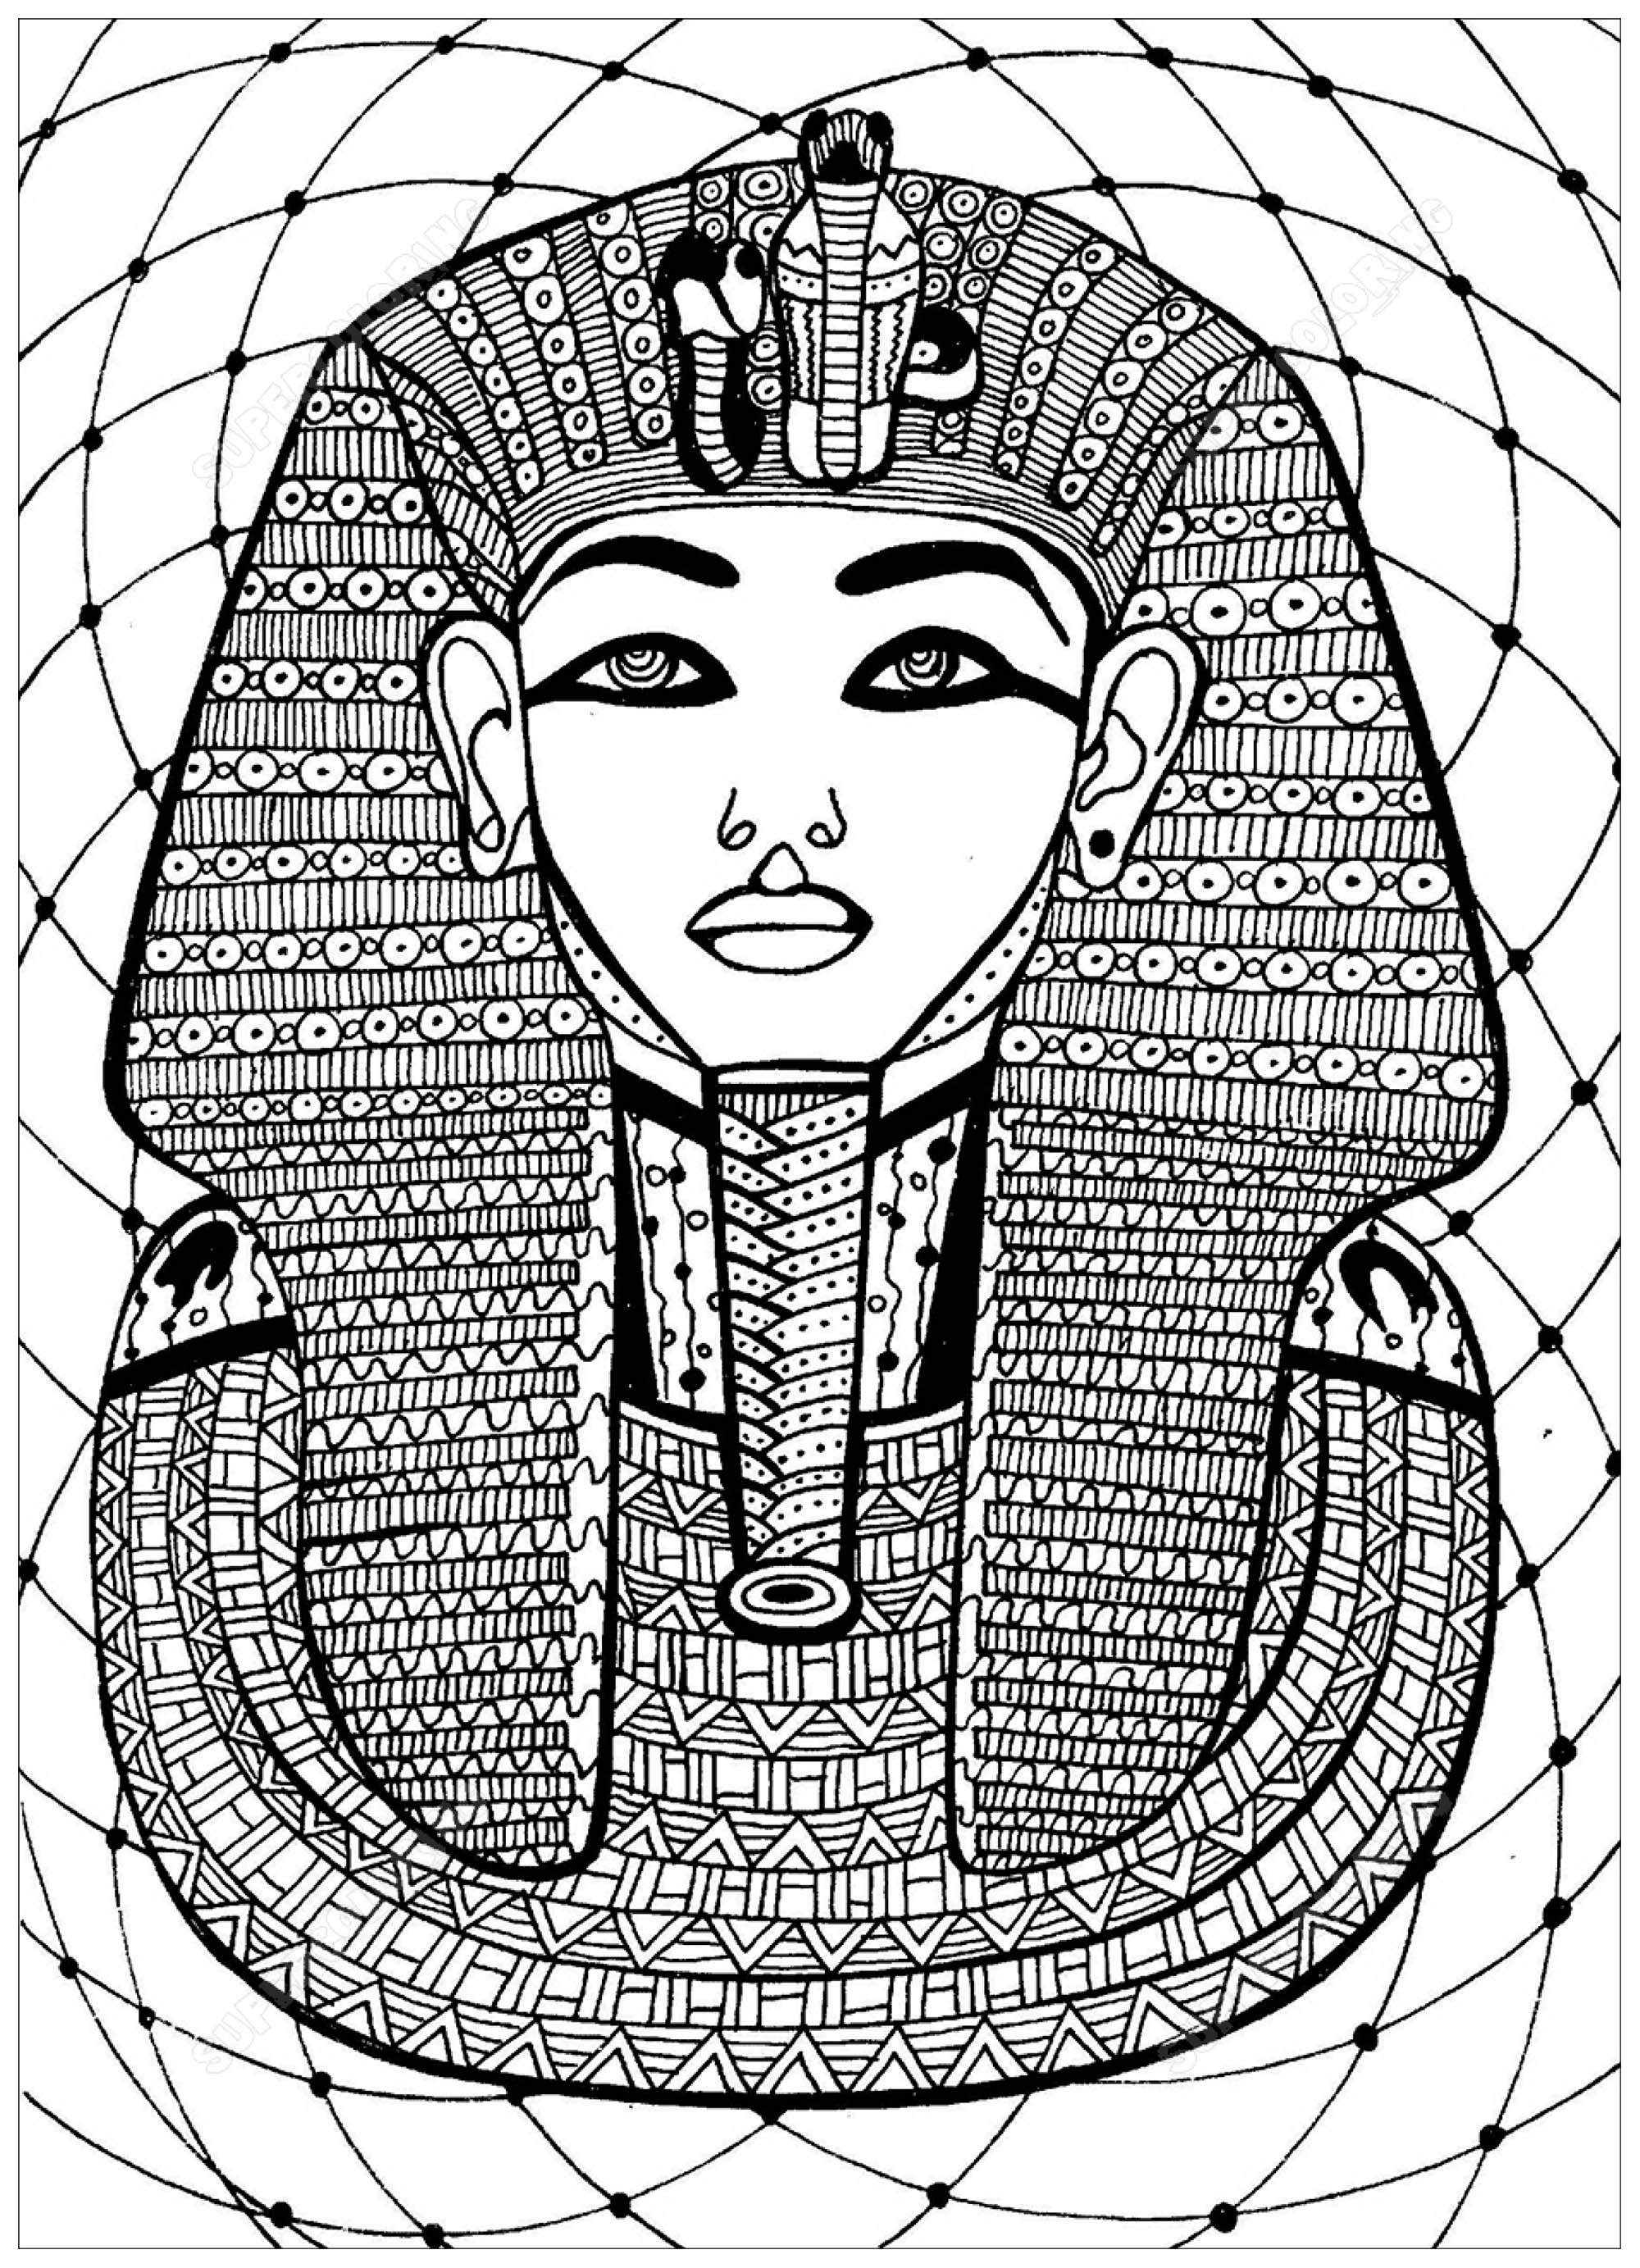 Head crowns from ancient egypt egypt adult coloring pages Coloring book for adults egypt